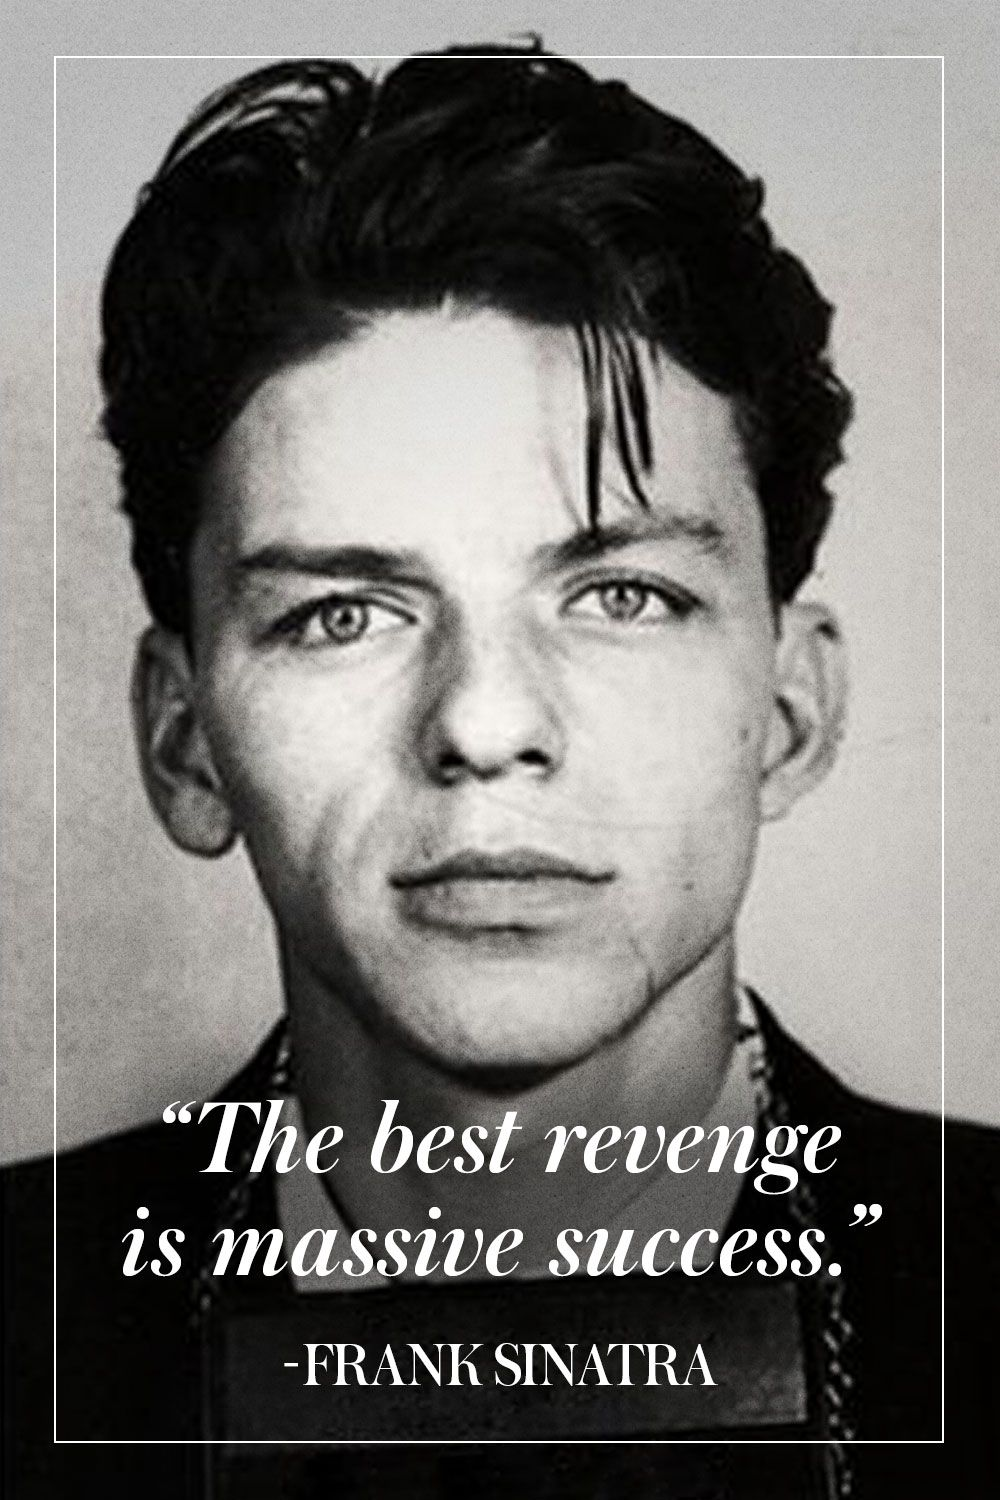 Sinatra Quotes The Man The Myth The Legend Our Favorite Frank Sinatra Quotes